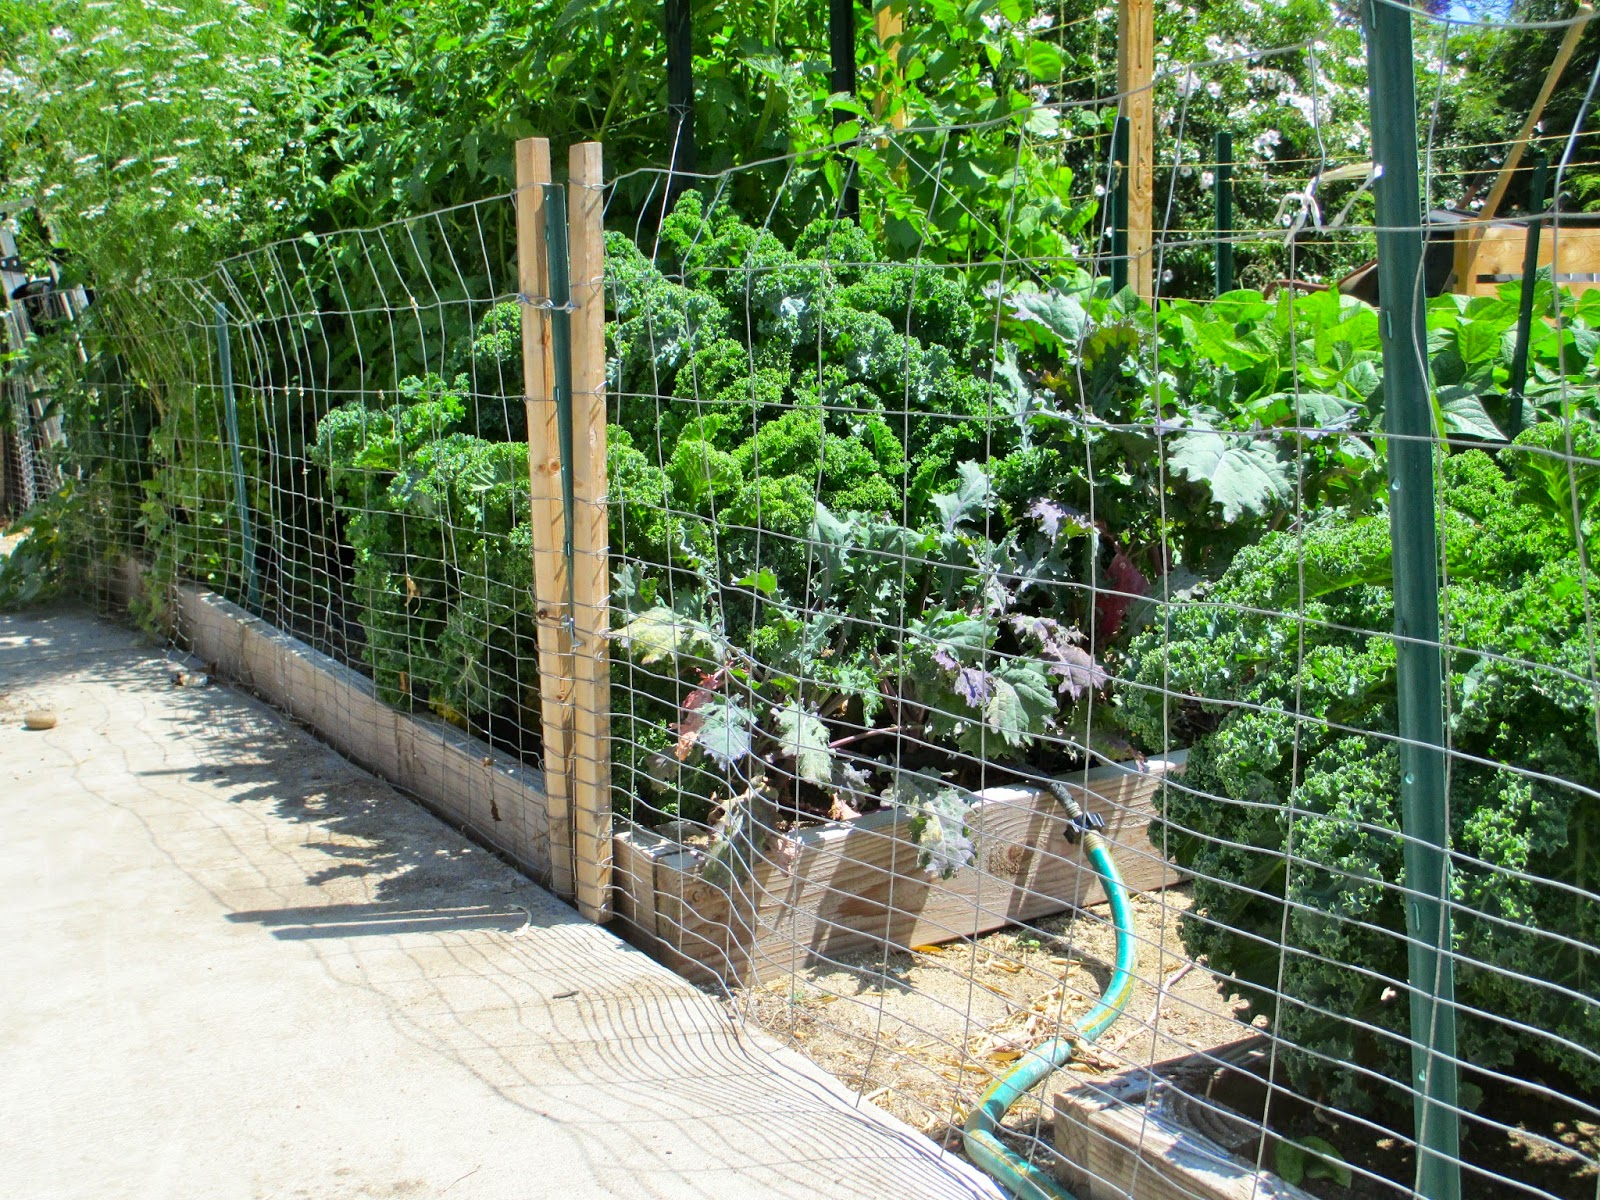 Andie's Way: Fence And Simple Gates